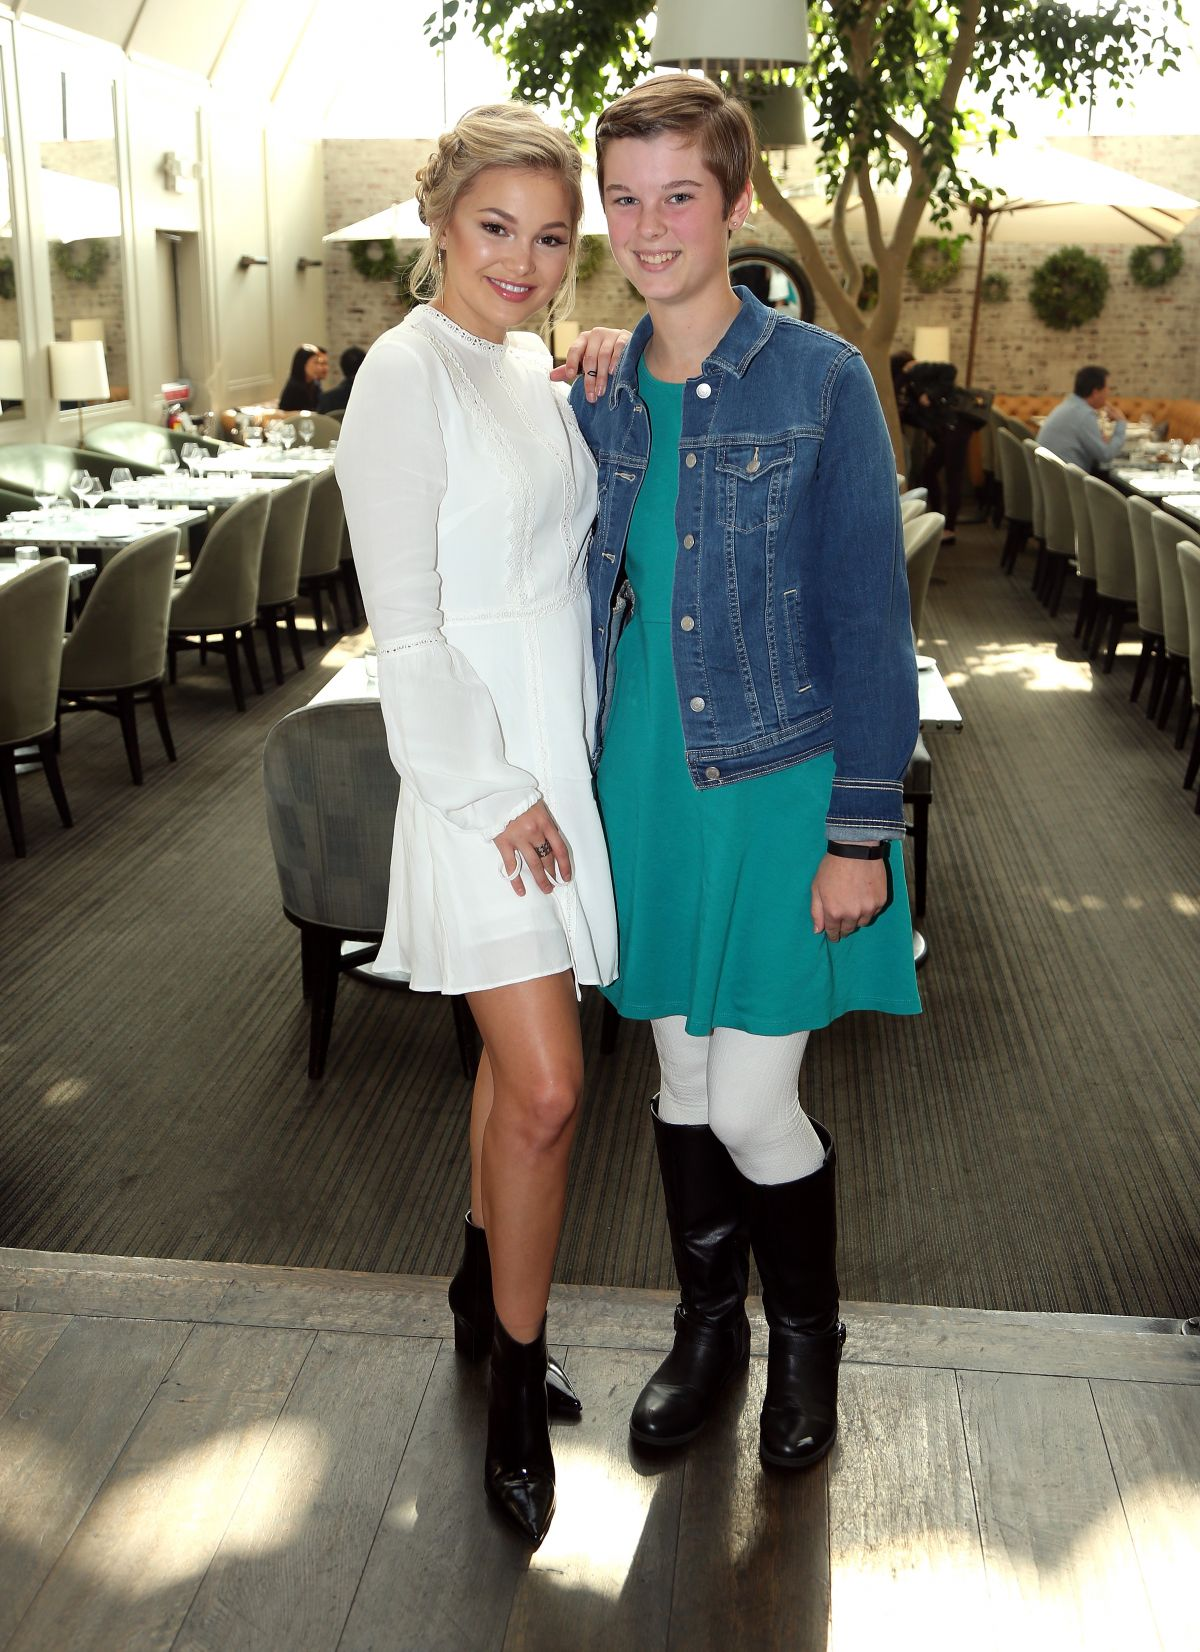 Olivia Holt At St. Jude Children's Research Hospital Luncheon in LA   olivia-holt-at-st.-jude-children-s-research-hospital-luncheon-in-la_7